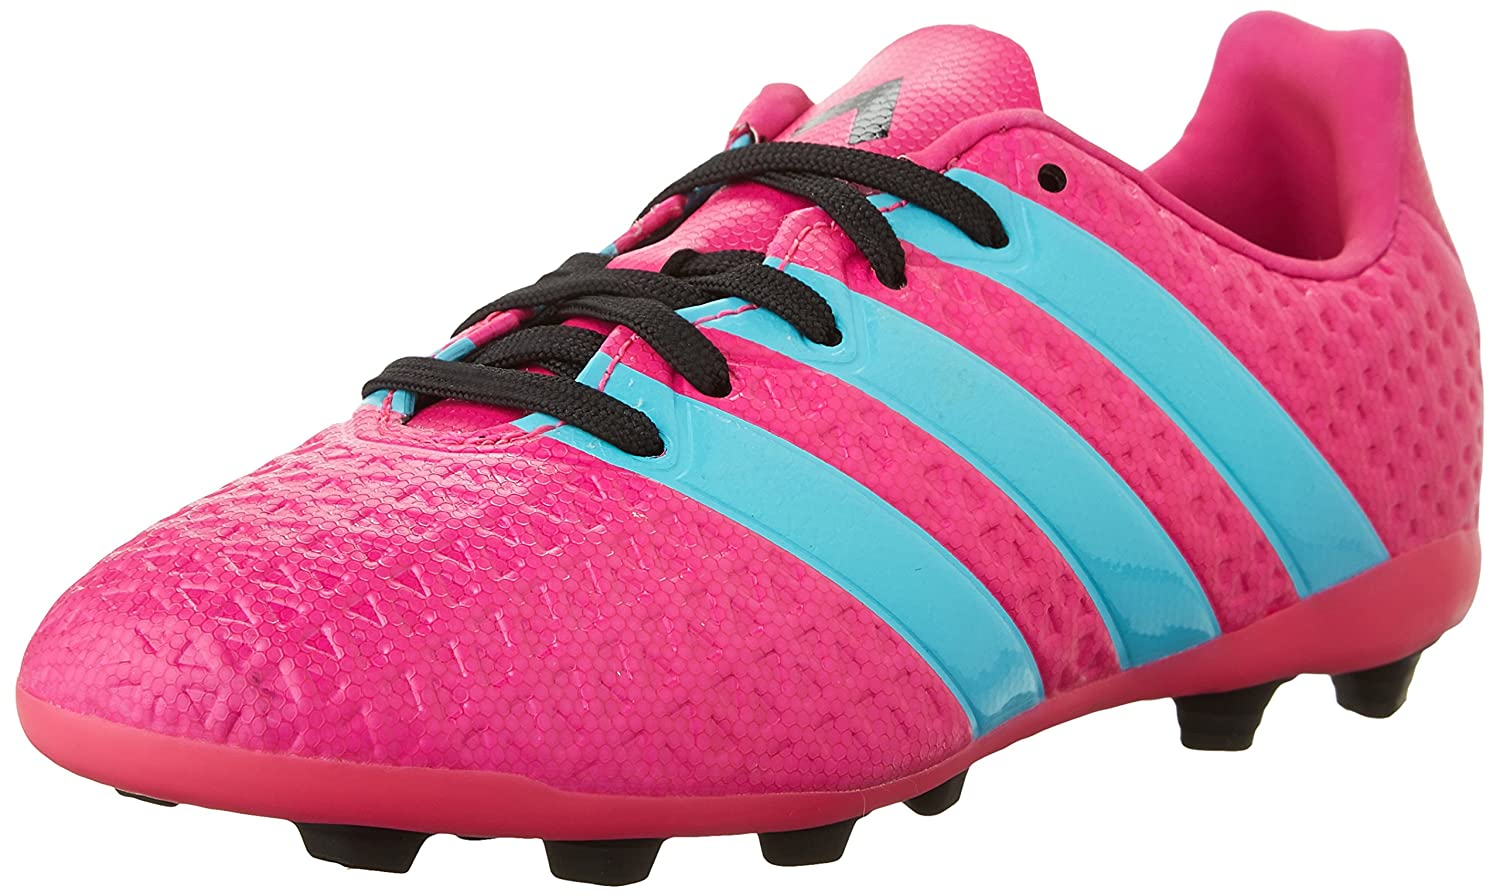 Amazon.com | adidas Performance Ace 16.4 FxG Girls Soccer Shoe  (Toddler/Little Kid/Big Kid), Shock Pink/Blue/Black, 2 M US Little Kid |  Soccer